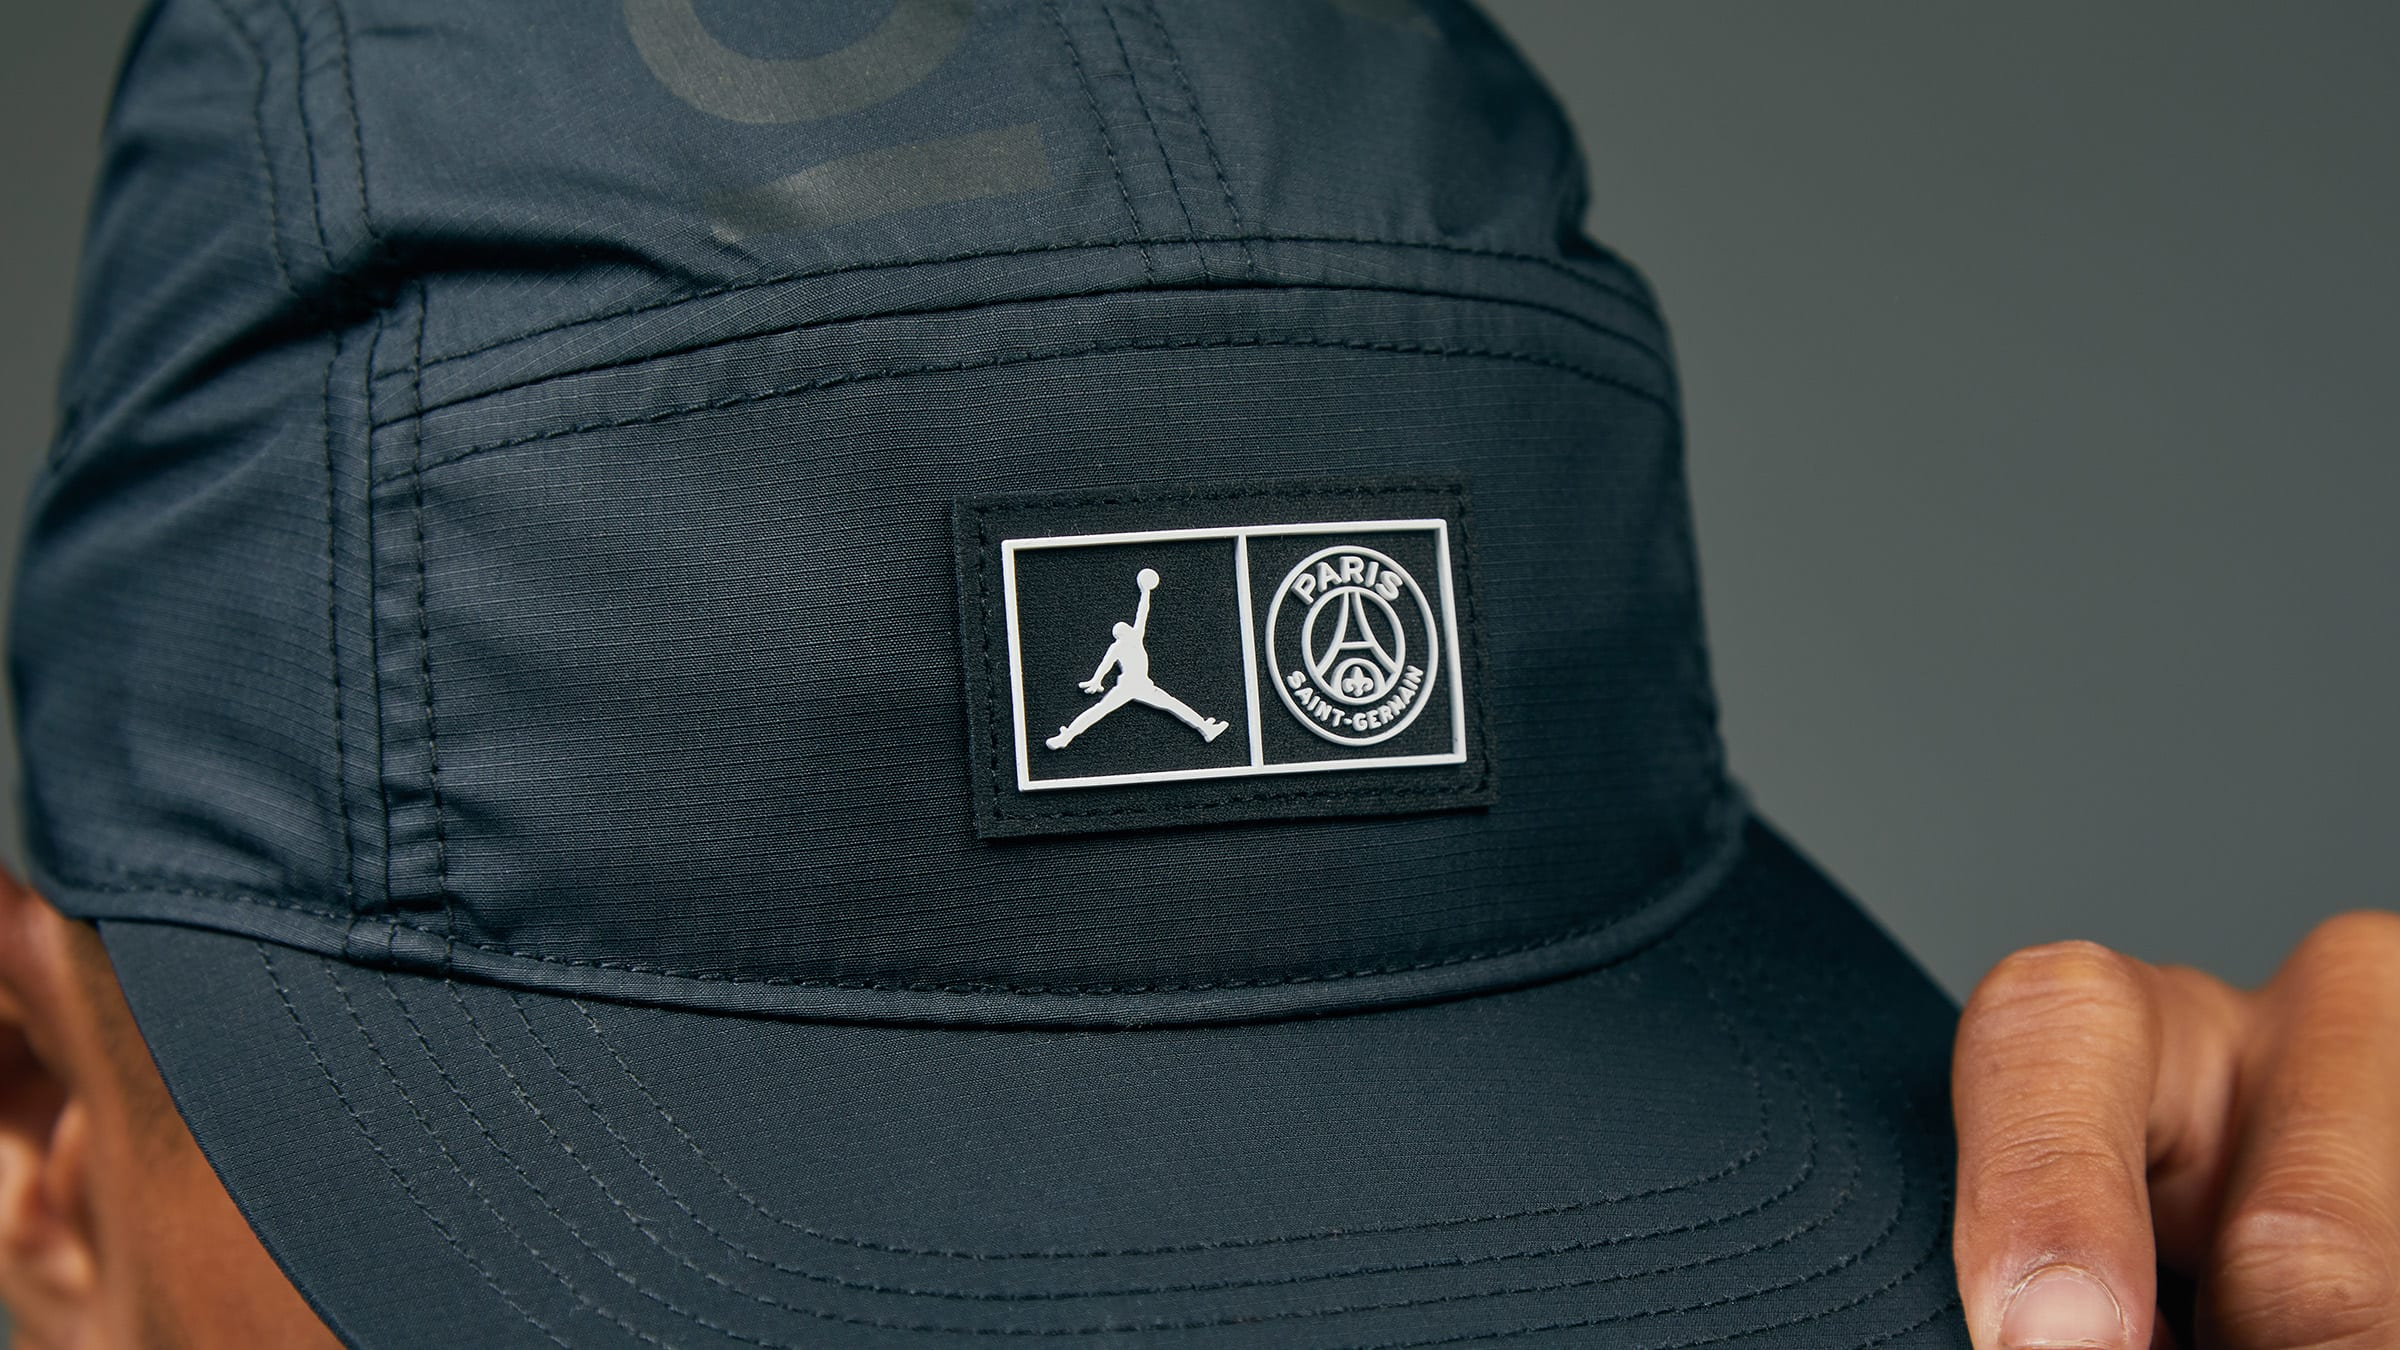 abd17811bb832 Jordan x Paris Saint-Germain AW84 Cap (Black)